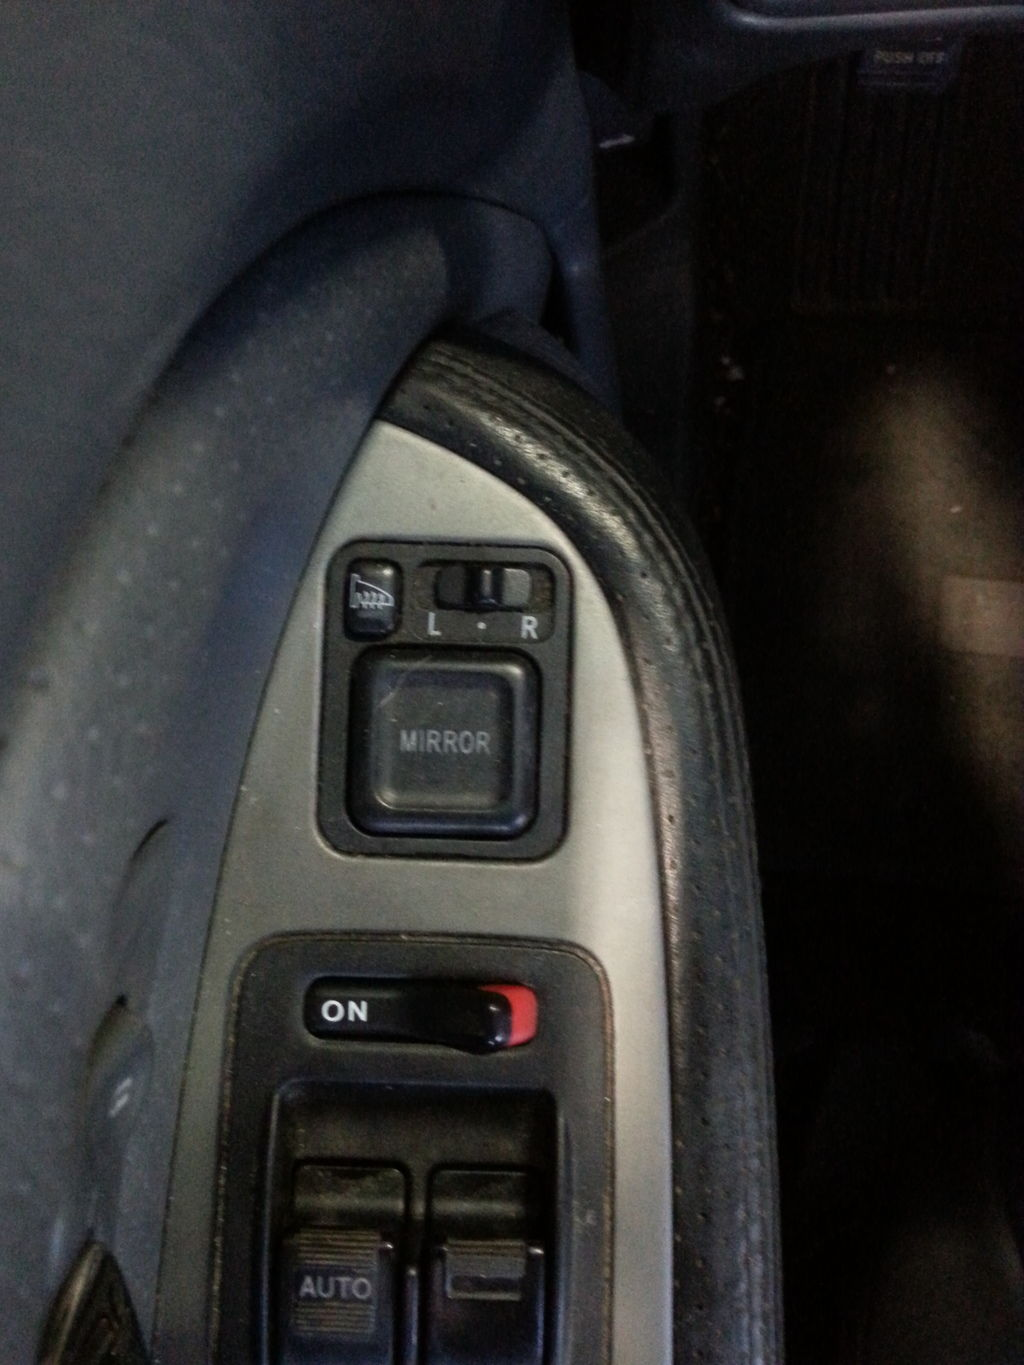 Honda Civic Pilot >> Power heated mirror switch - Honda-Tech - Honda Forum Discussion